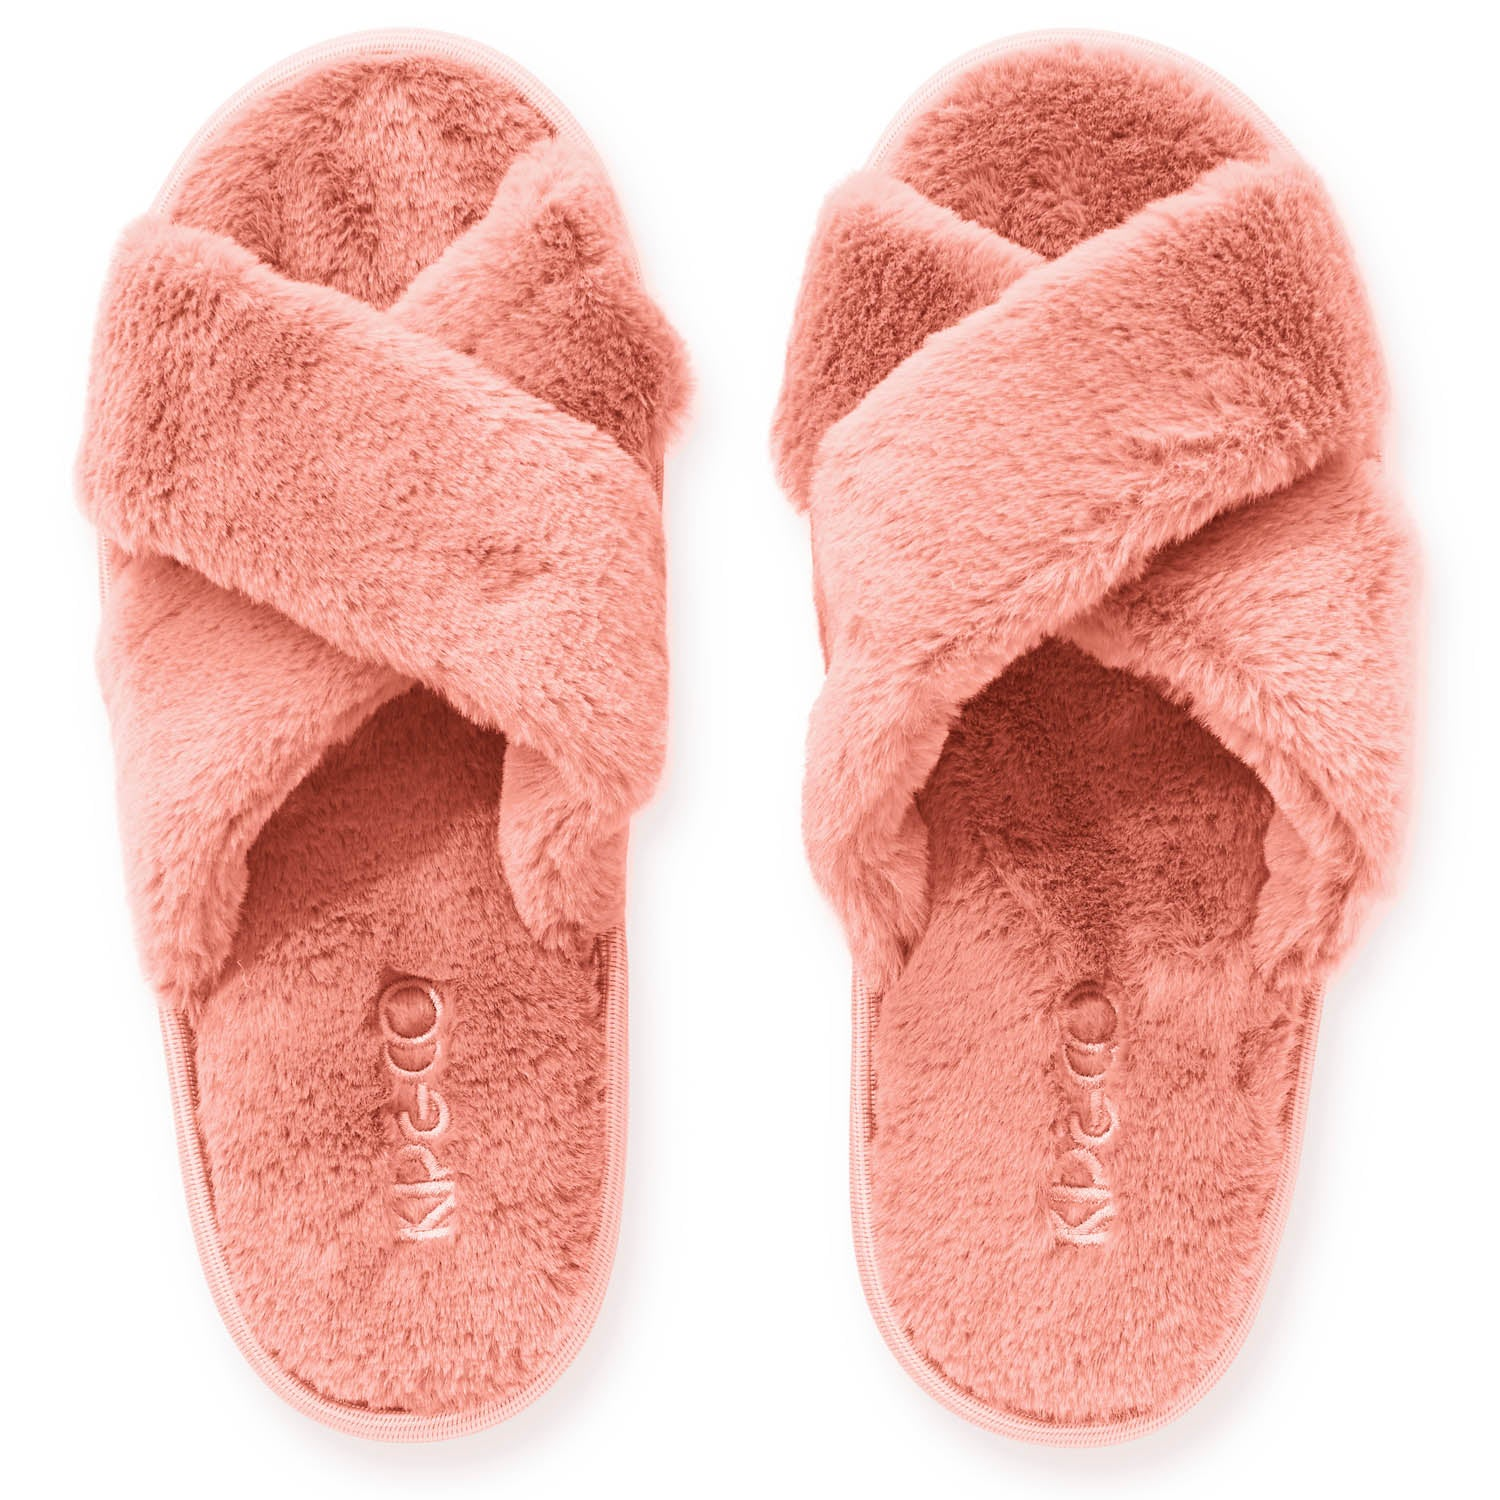 Kip & Co - Blush Pink Adult Slippers